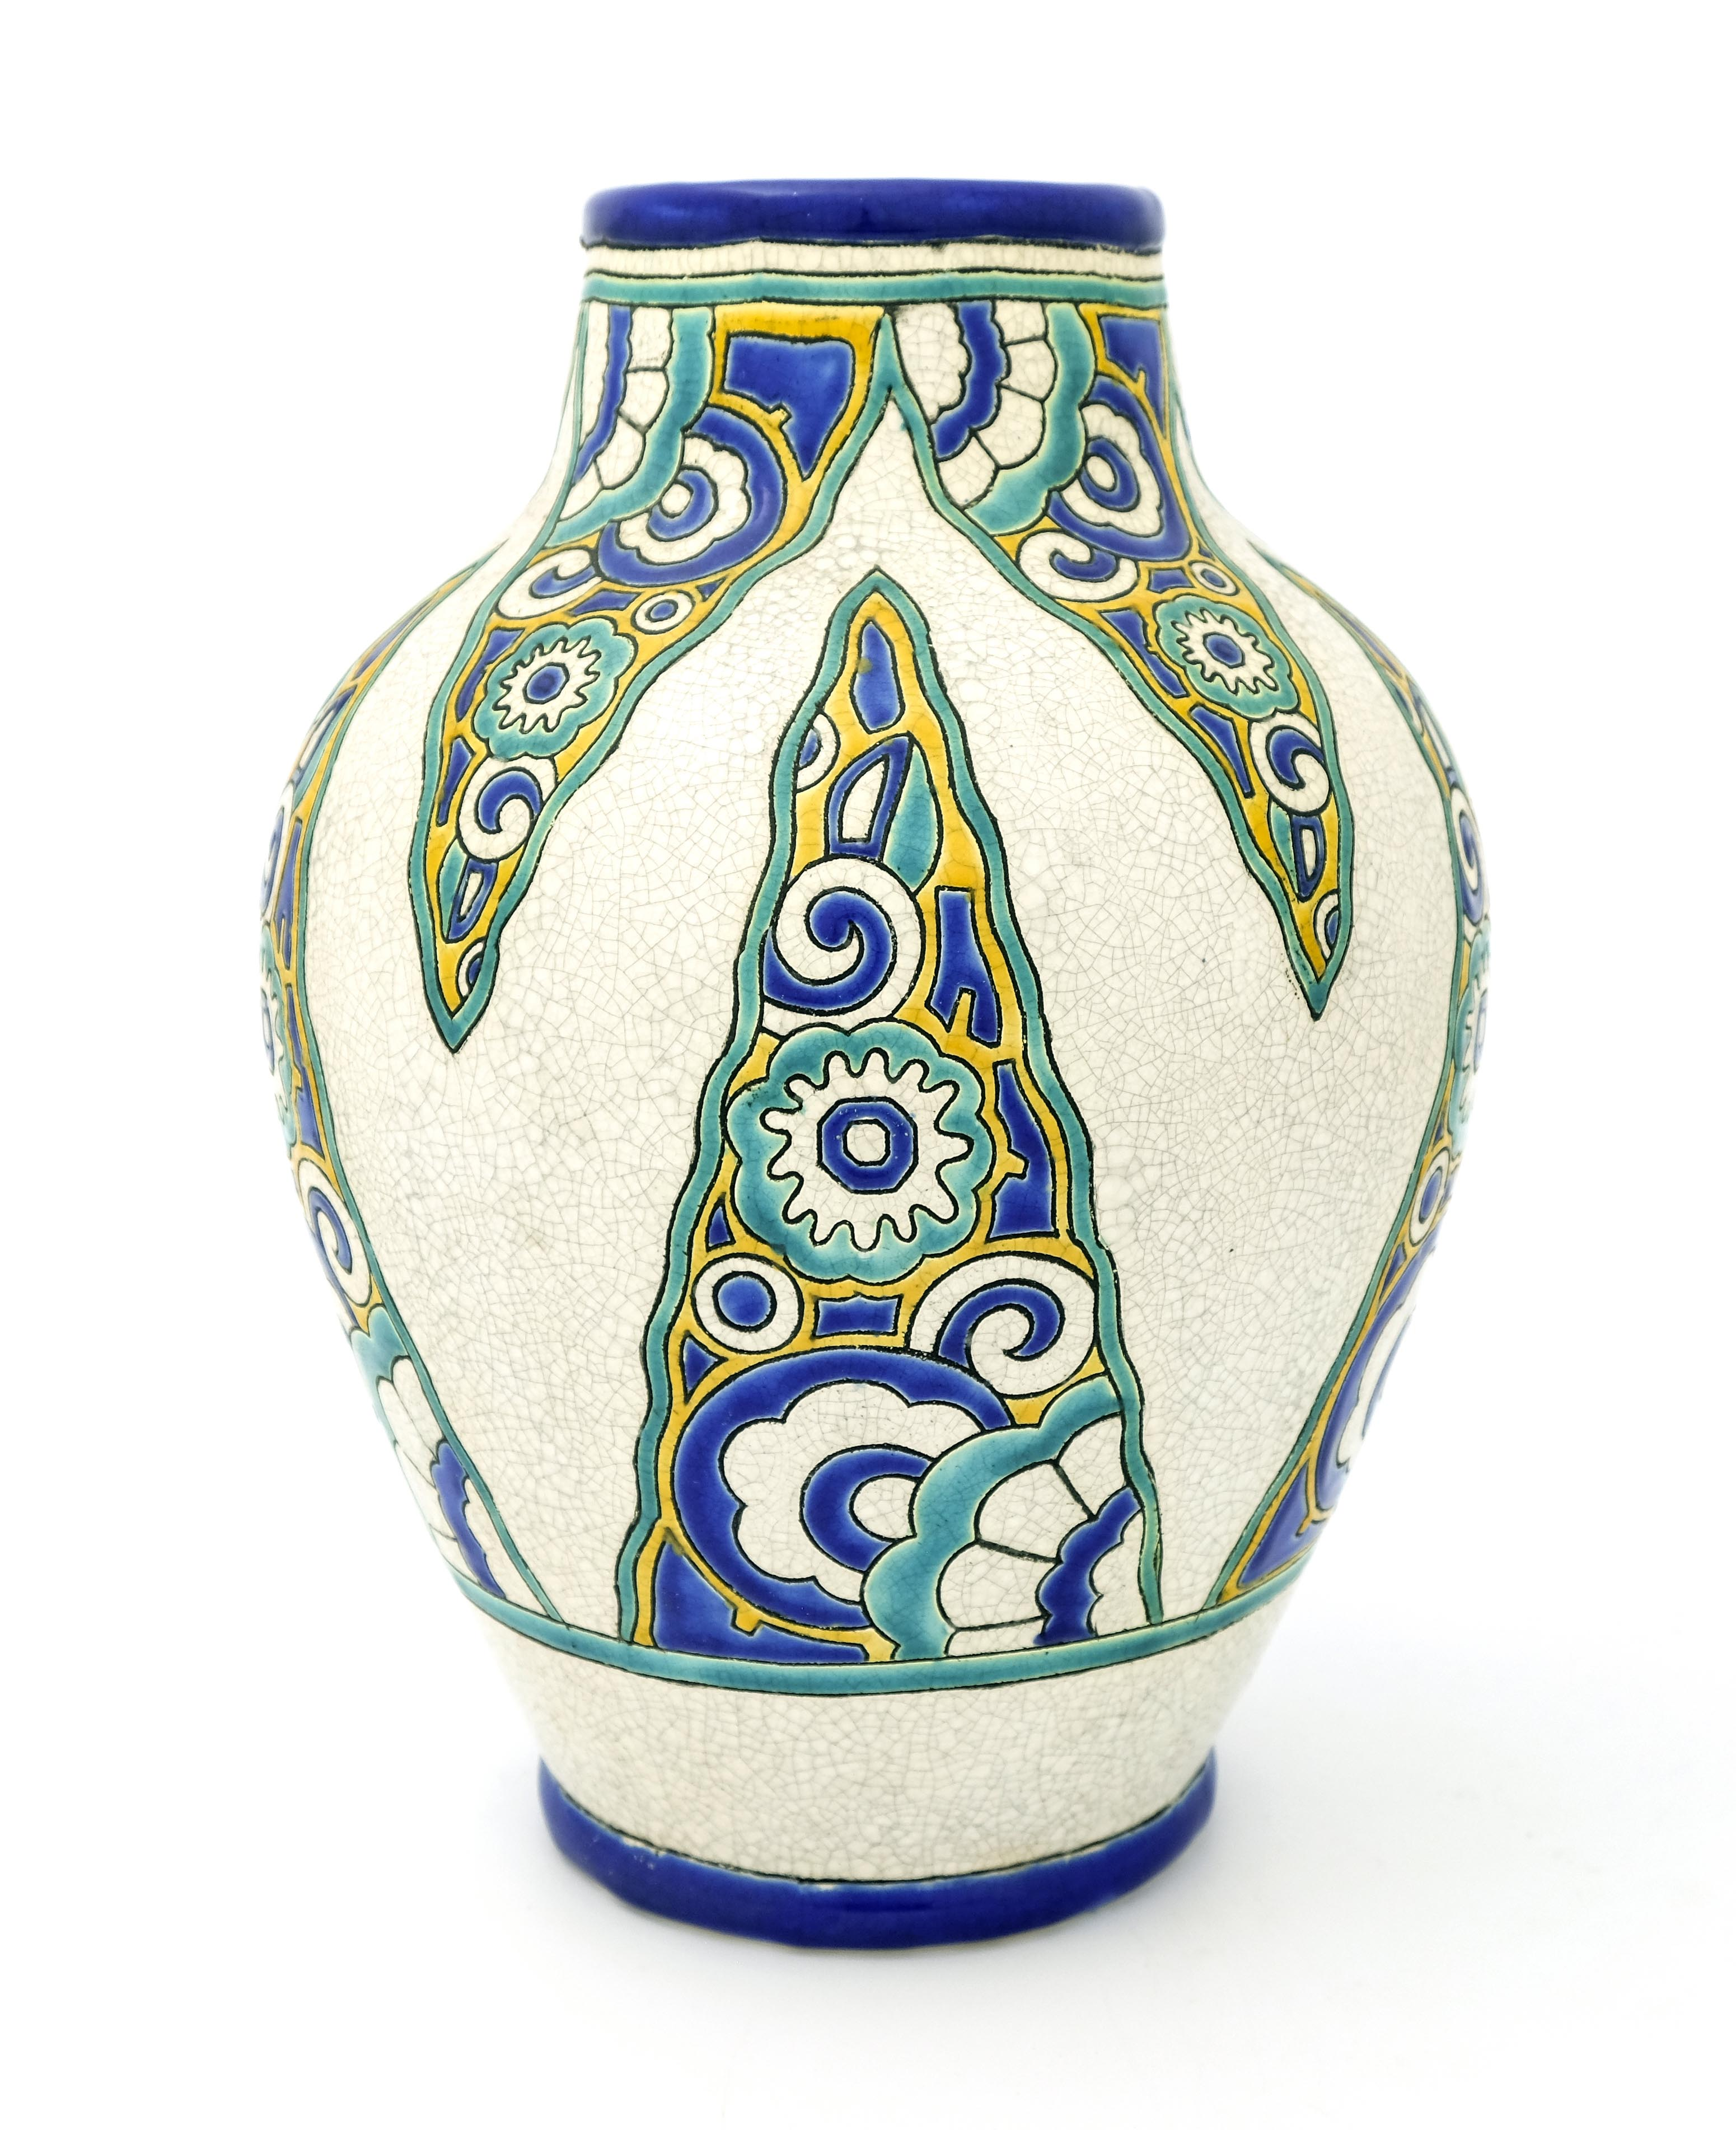 Charles Catteau for Boch Freres, an Art Deco vase